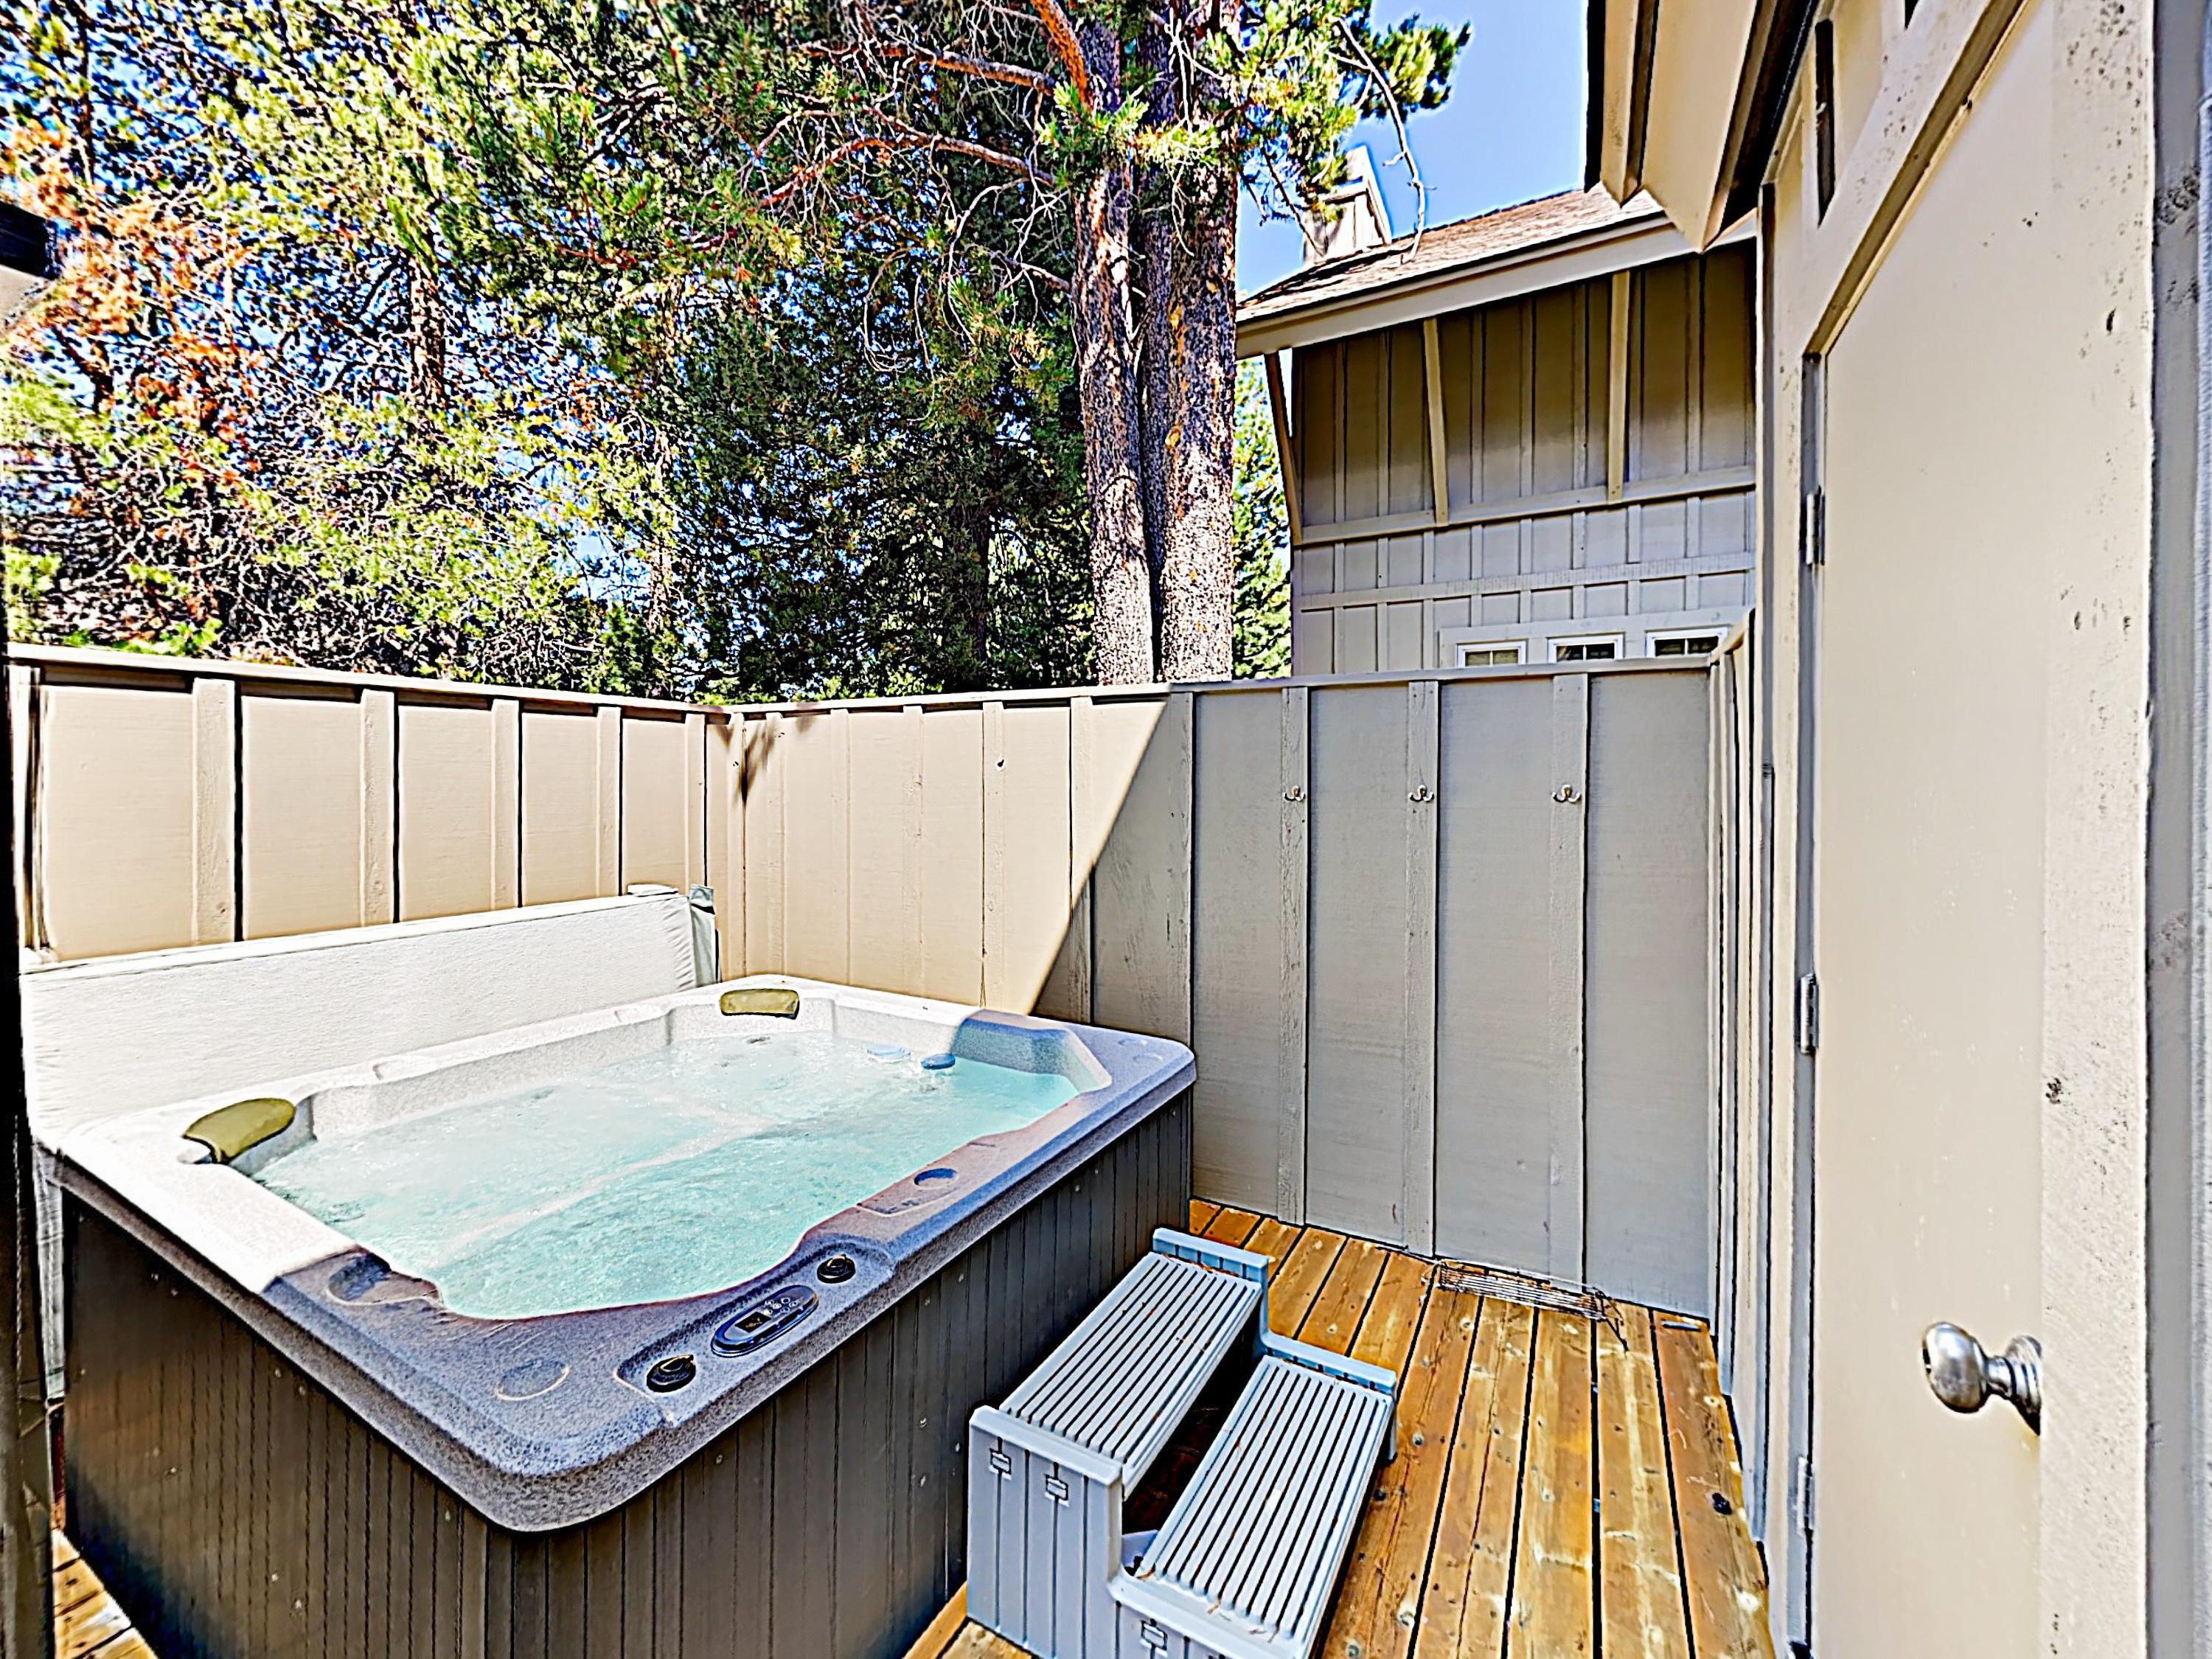 After an exciting day exploring Sunriver, relax your muscles in the private hot tub.